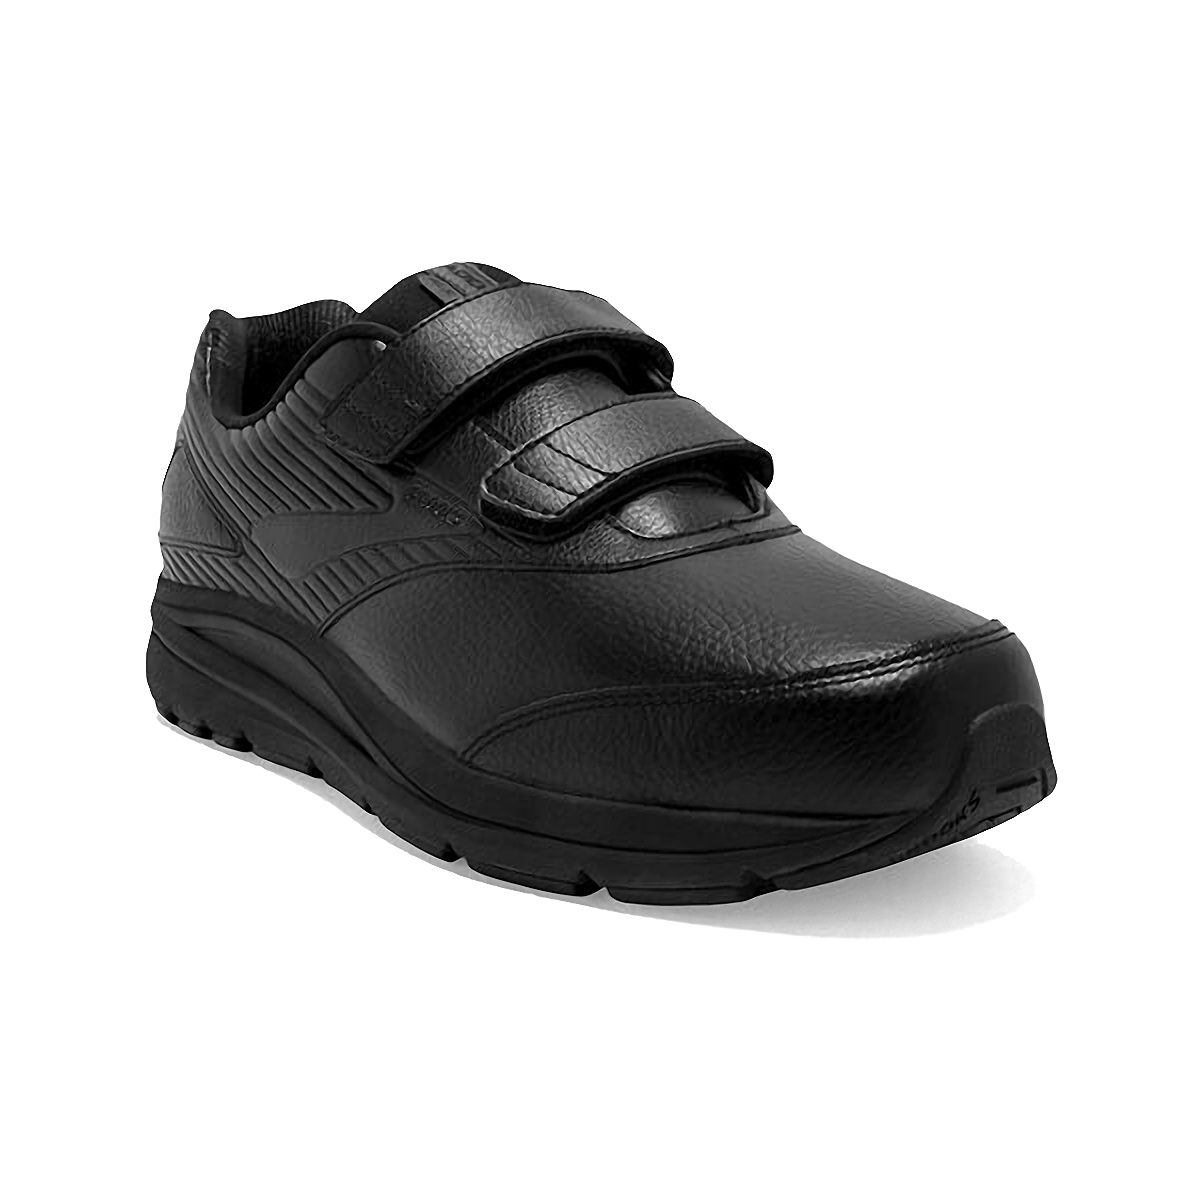 Men's Brooks Addiction Walker V-Strap 2 Walking Shoe - Color: Black/Black - Size: 7 - Width: Regular, Black, large, image 4